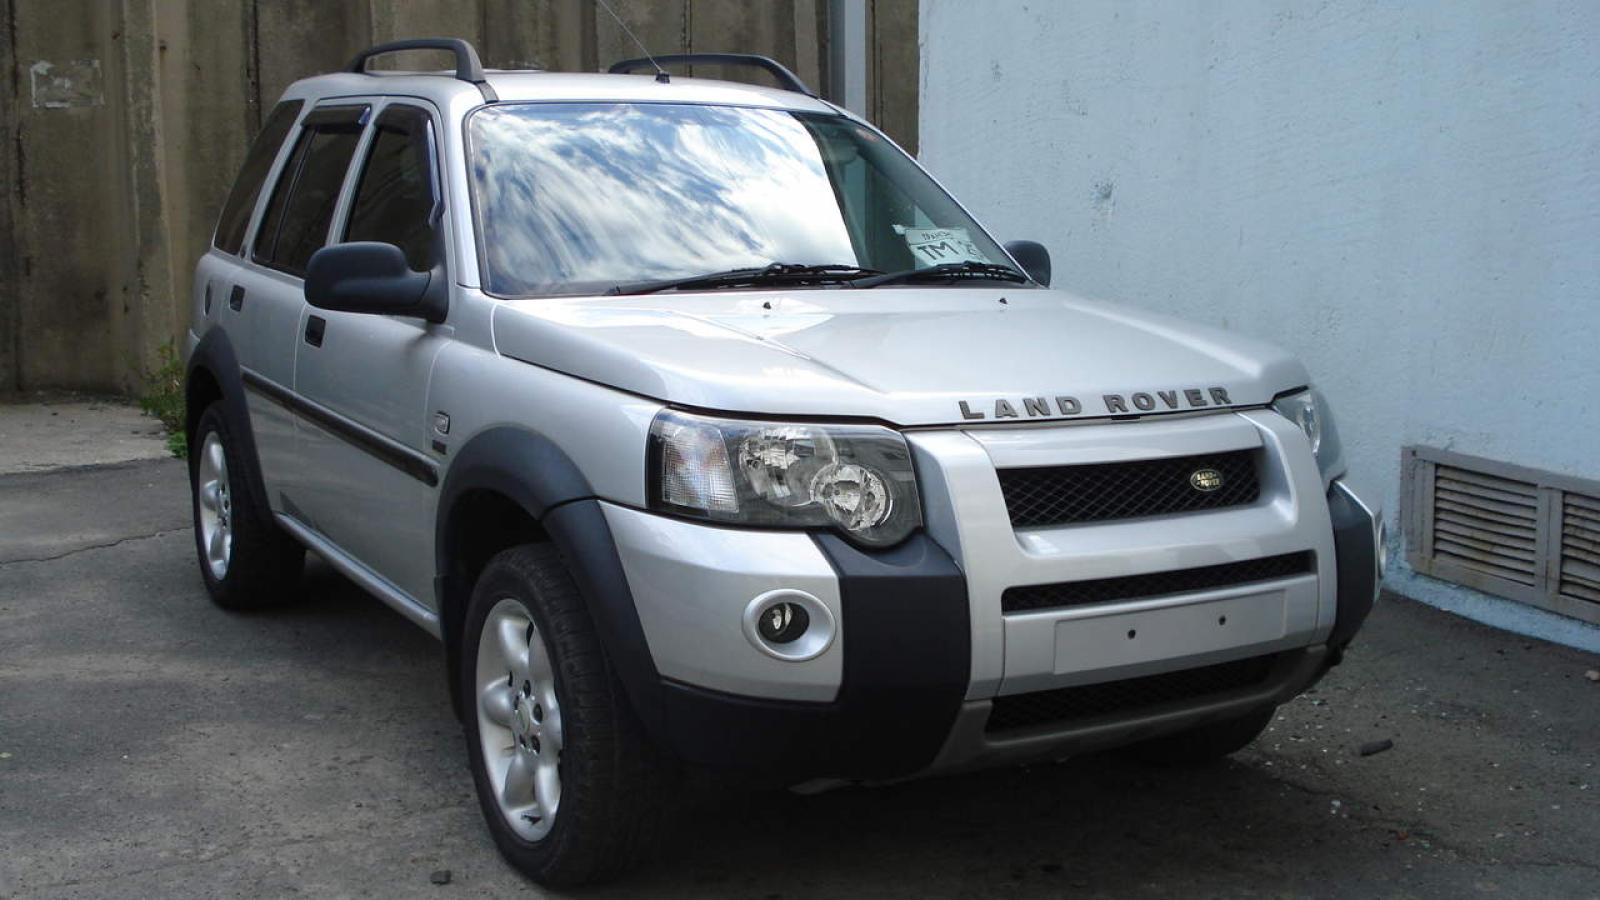 800 1024 1280 1600 origin 2004 land rover